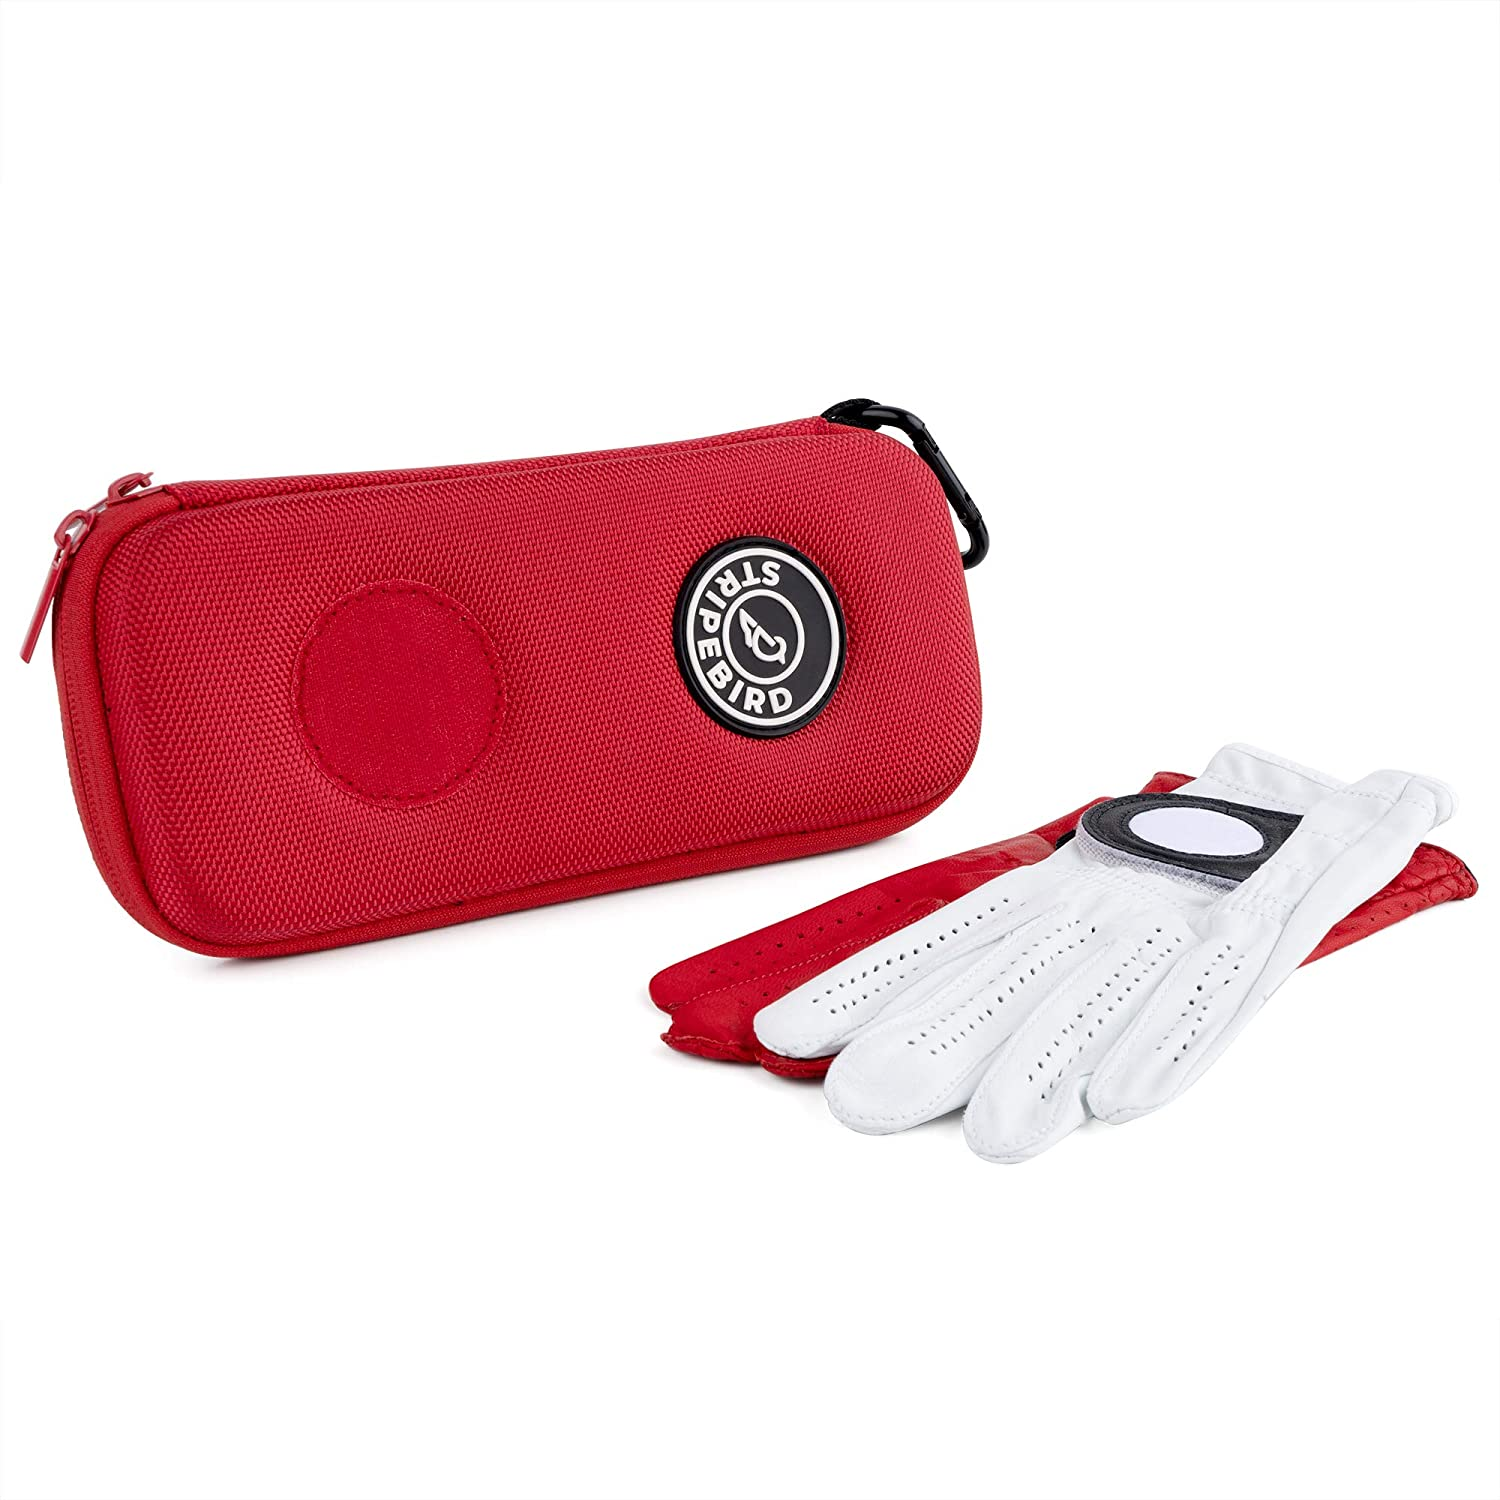 Stripebird - Golf Performance Gloves Holder Case - Protect and Keep Golf Gloves Dry - Moisture Free Storage Design - Includes Golf Bag Clip for Golfers